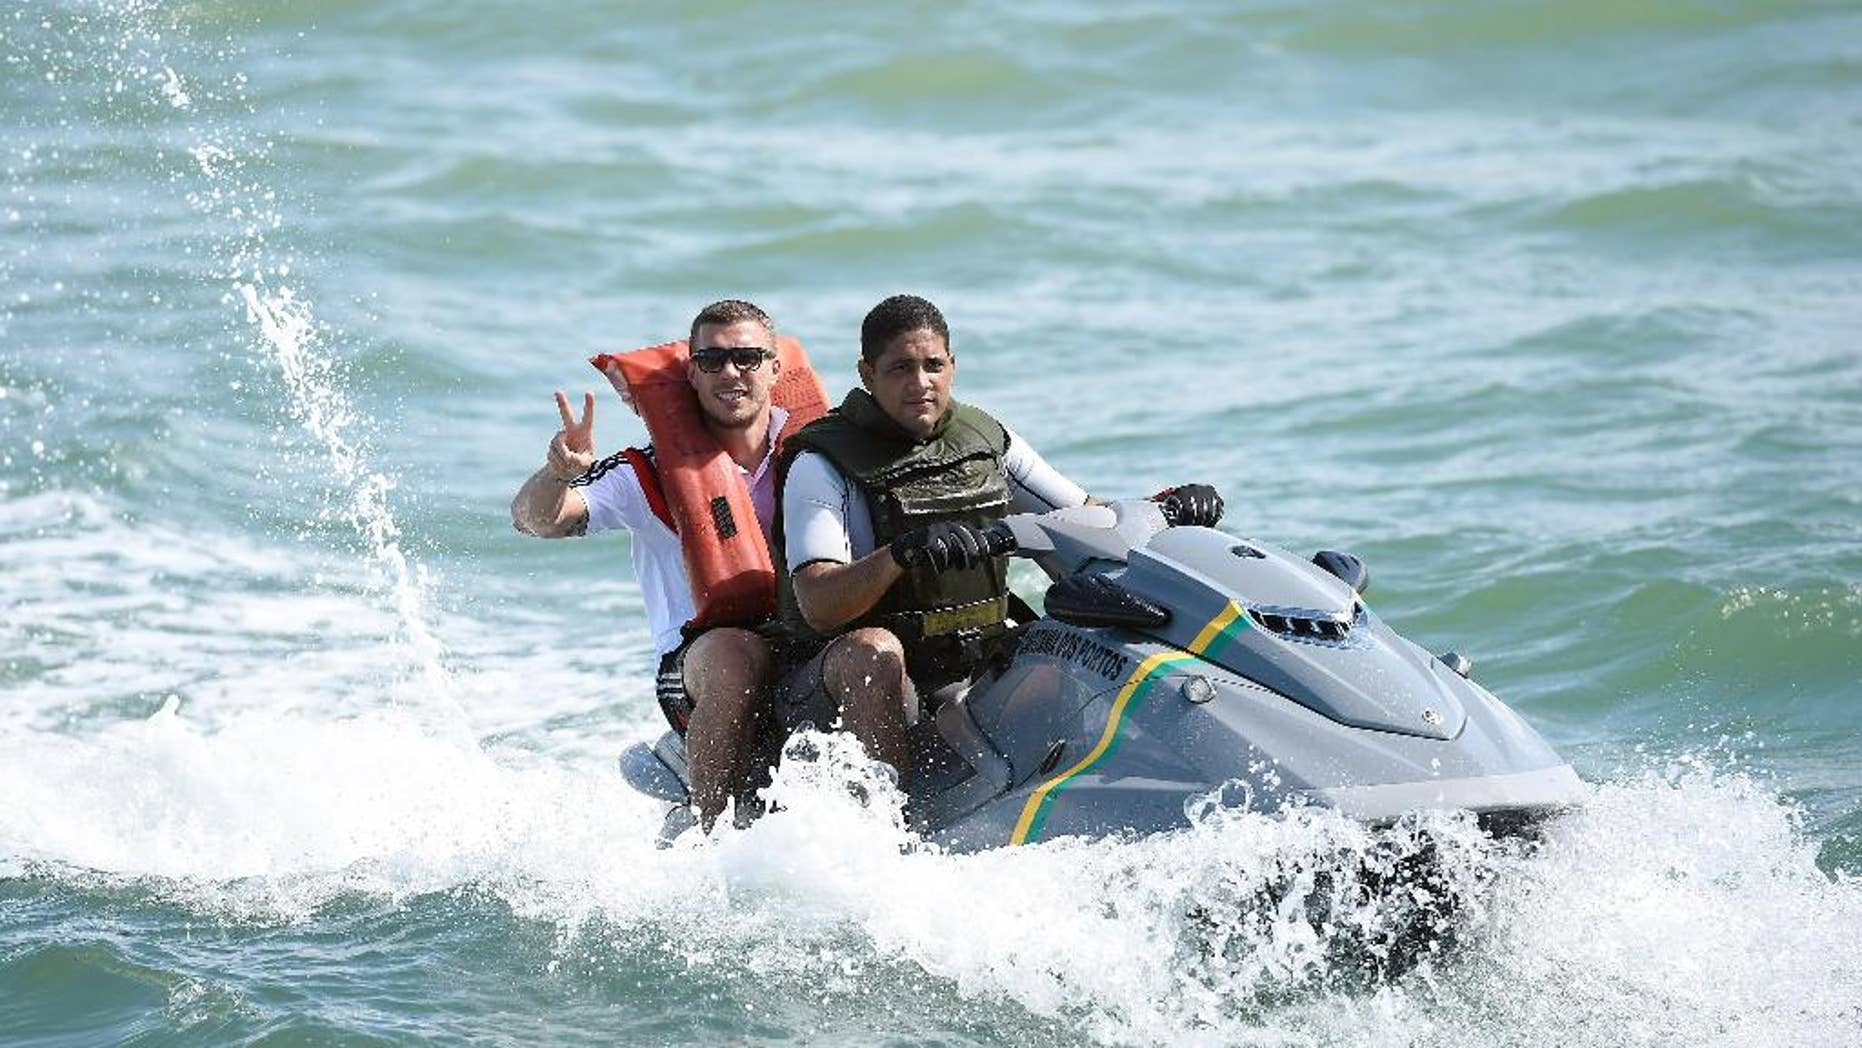 German national soccer player Lukas Podolski poses on a jet ski in Santo Andre near Porto Seguro, Brazil, Tuesday, June 10, 2014. The German team got some motivation help from explorer and adventurer Mike Horn during a sailing outing near their camp on Brazil's Atlantic coast. (AP Photo/Markus Gilliar, pool)